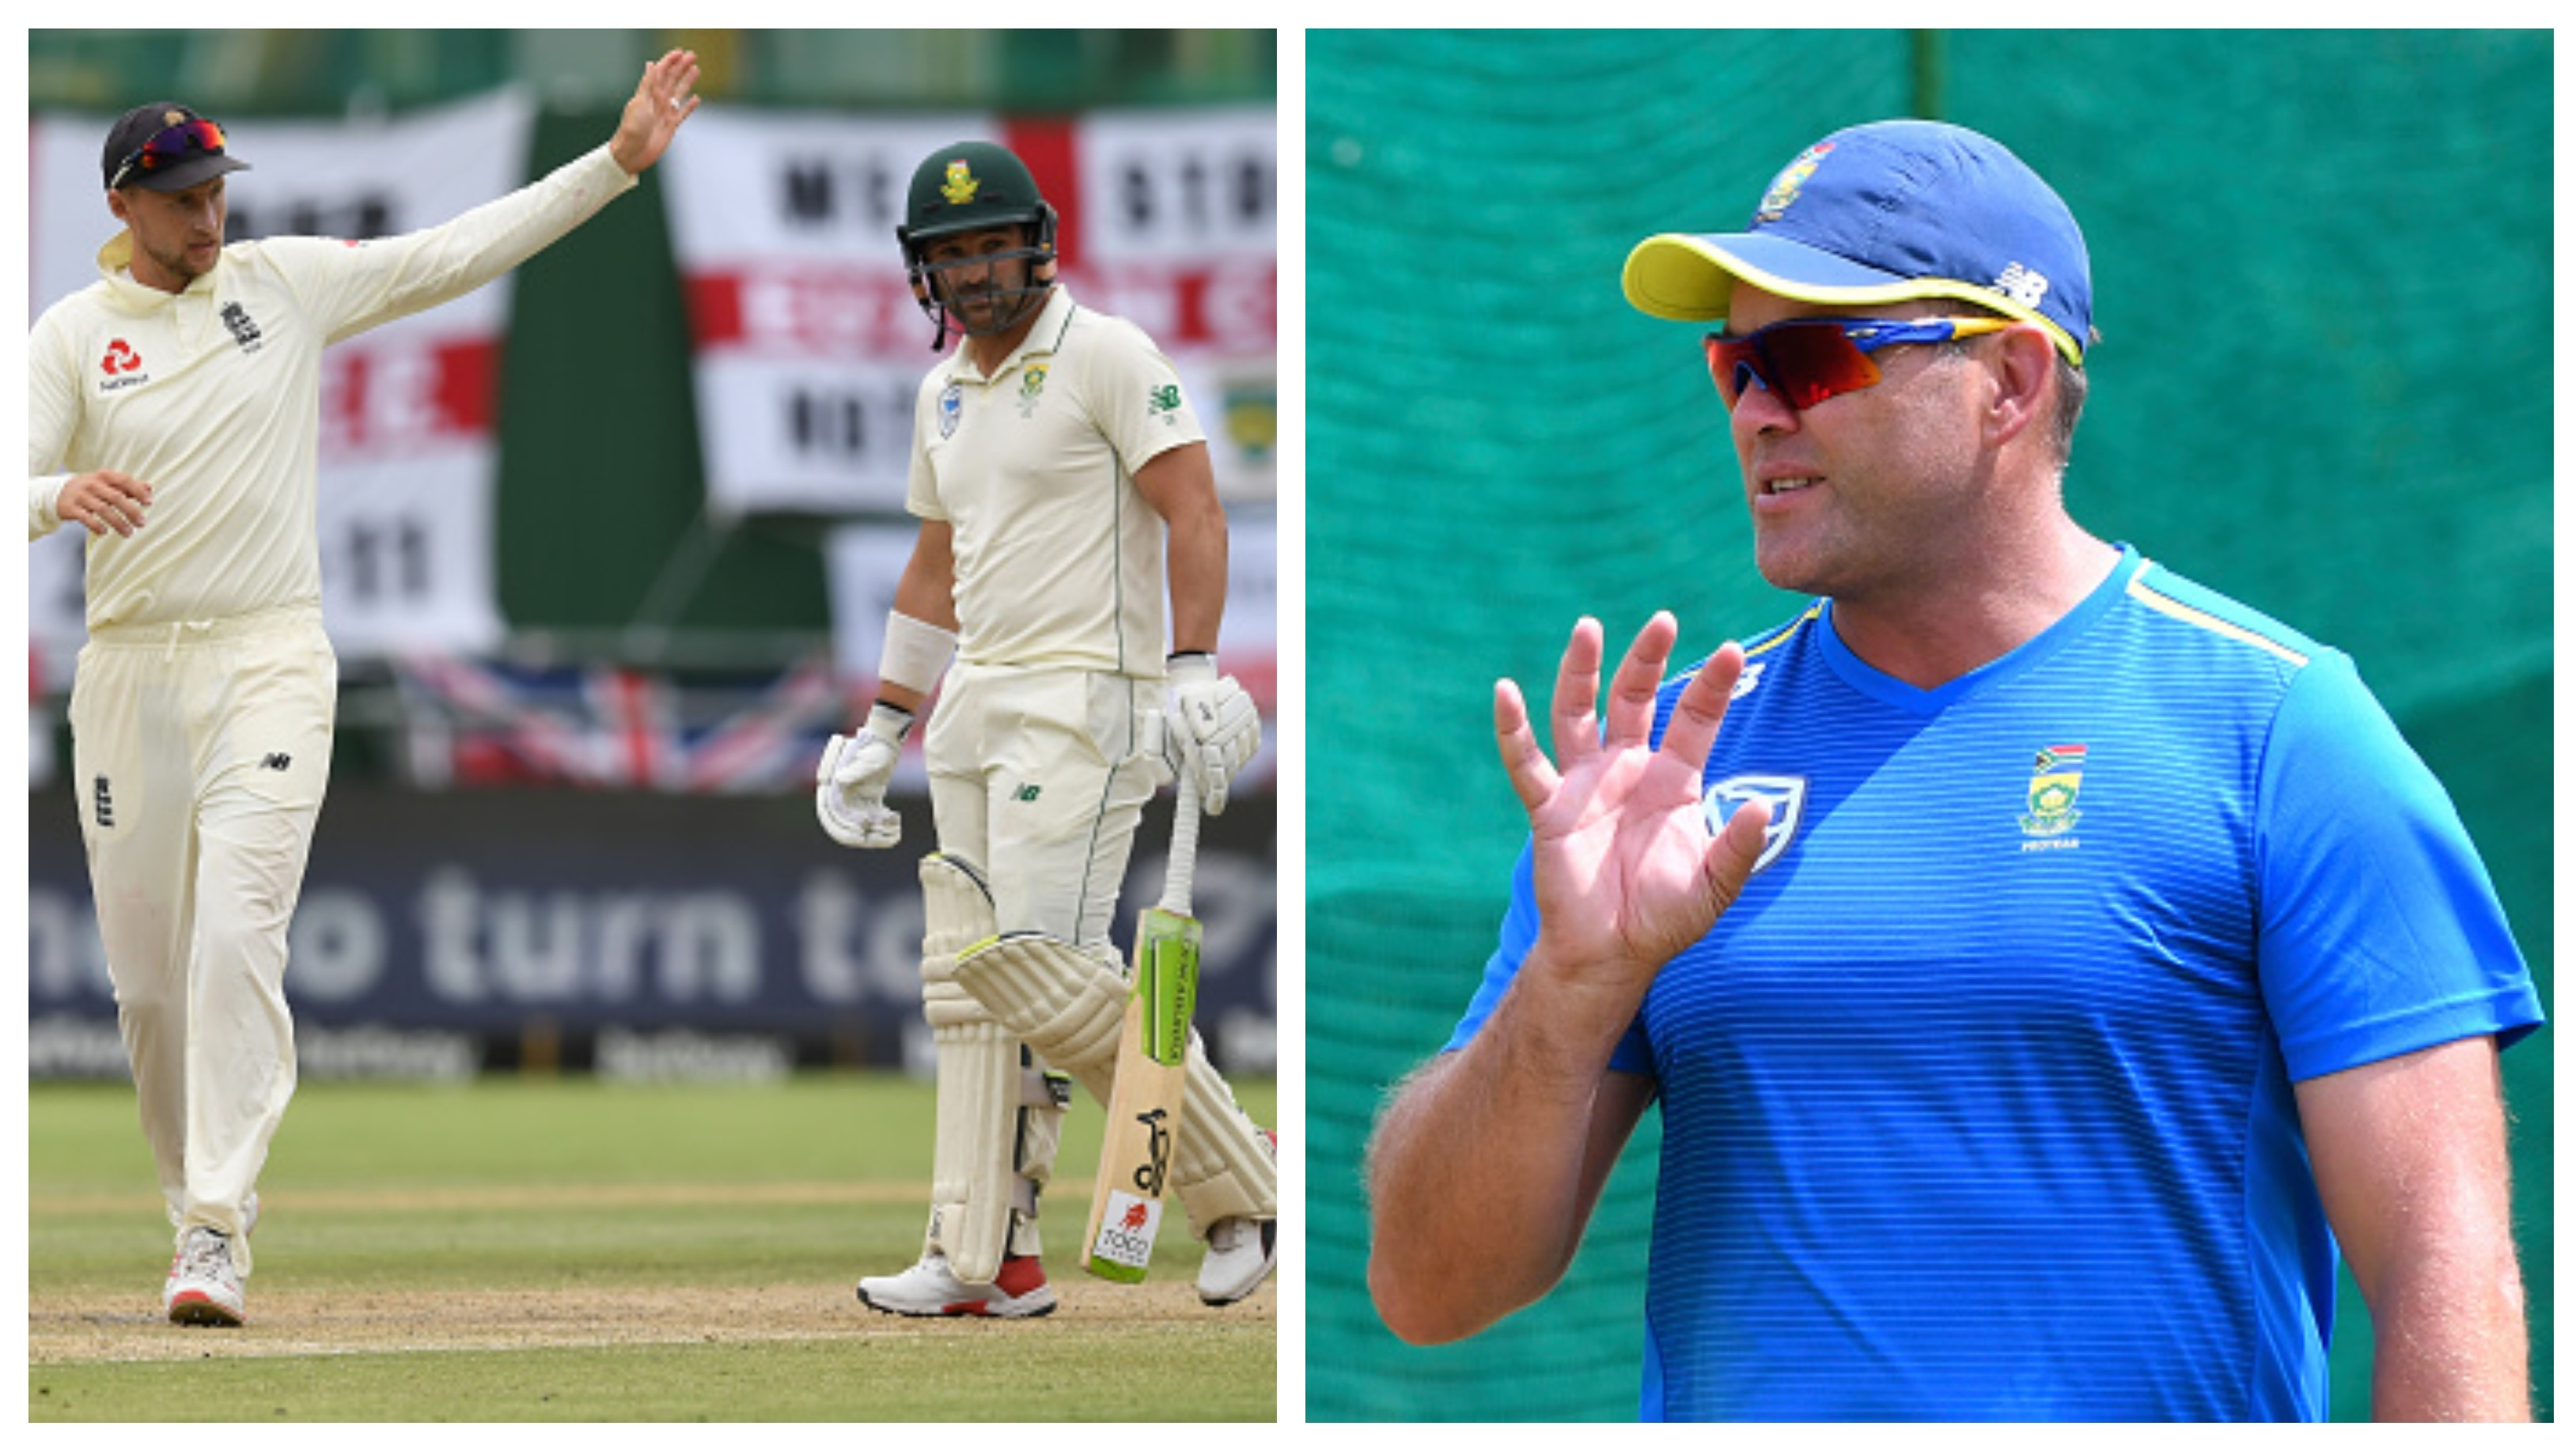 SA v ENG 2020: Kallis not yet losing hope of a victory in Cape Town Test for South Africa